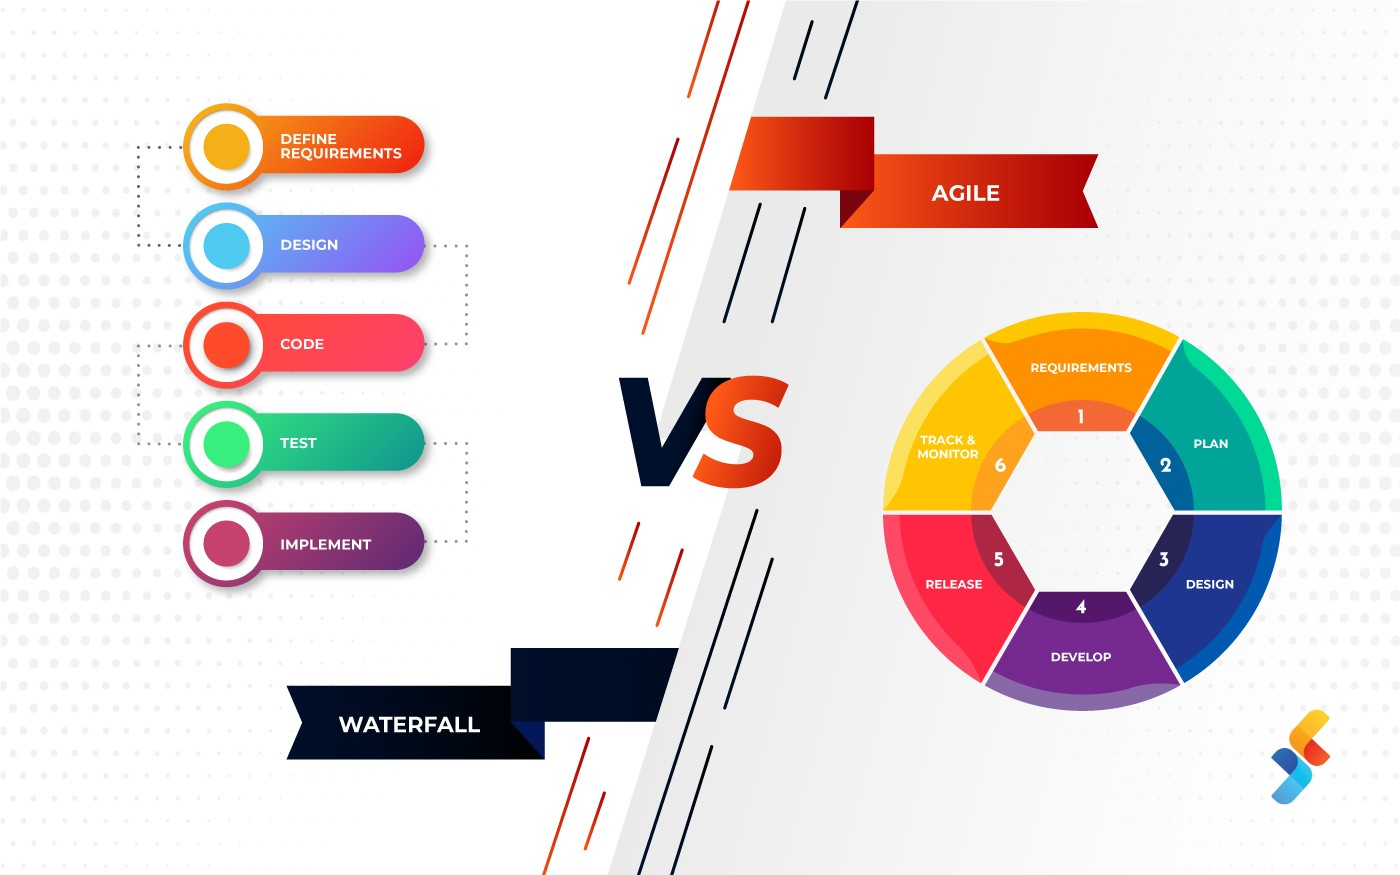 waterfall vs agile